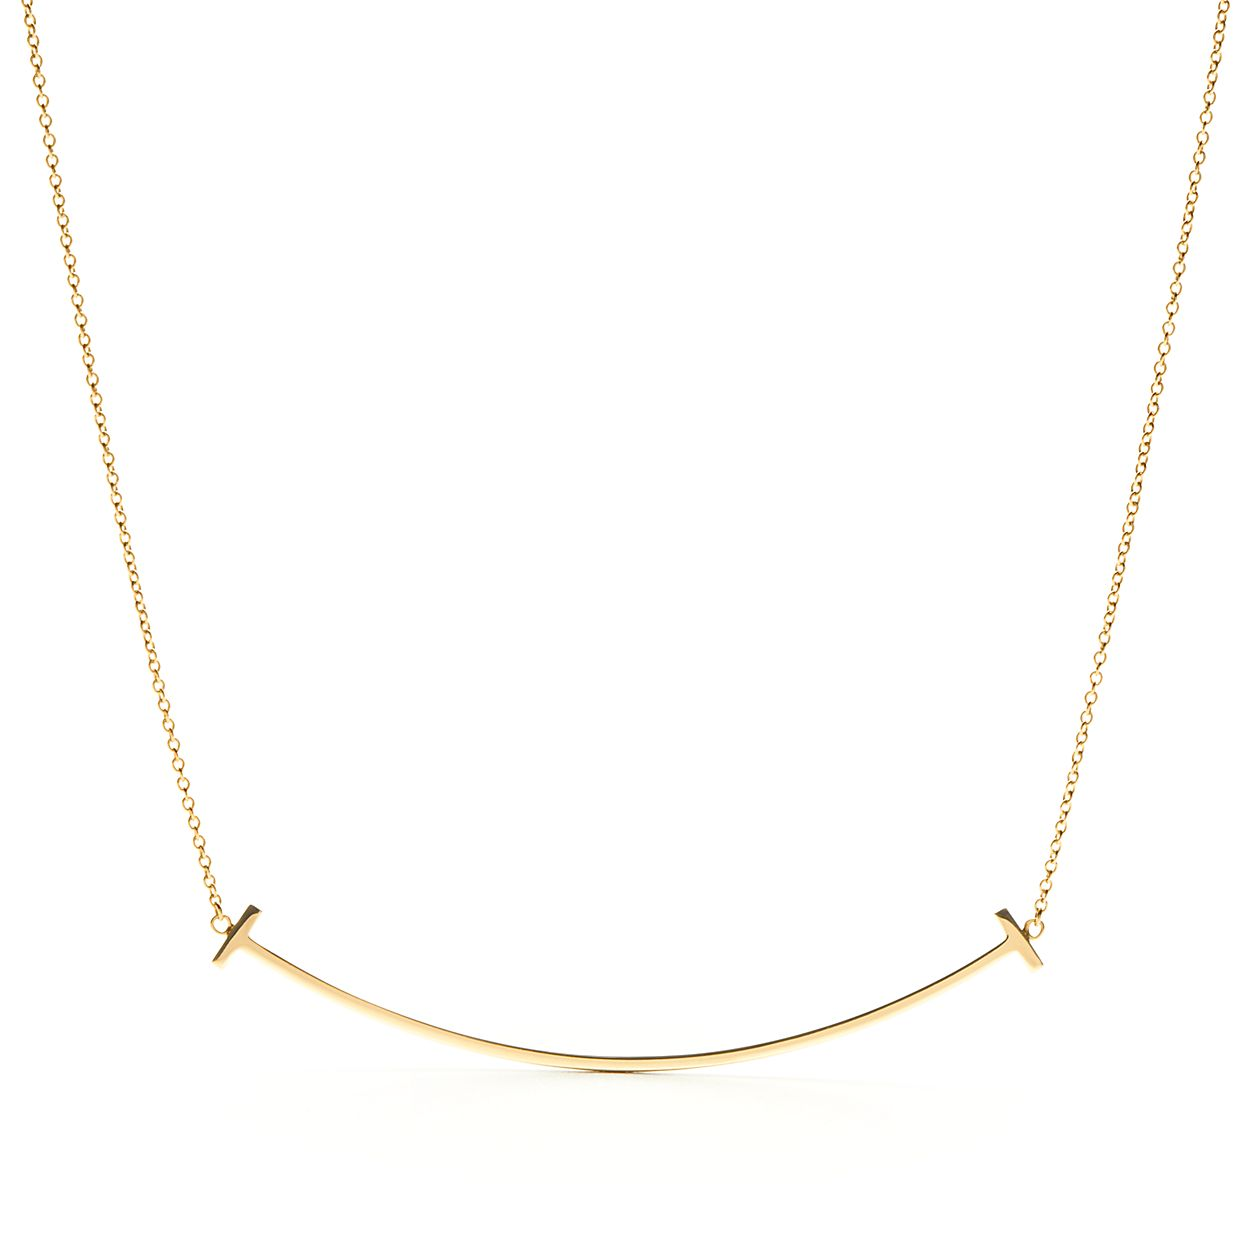 gold for life styleskier necklace com pendant fckmpkm everyday